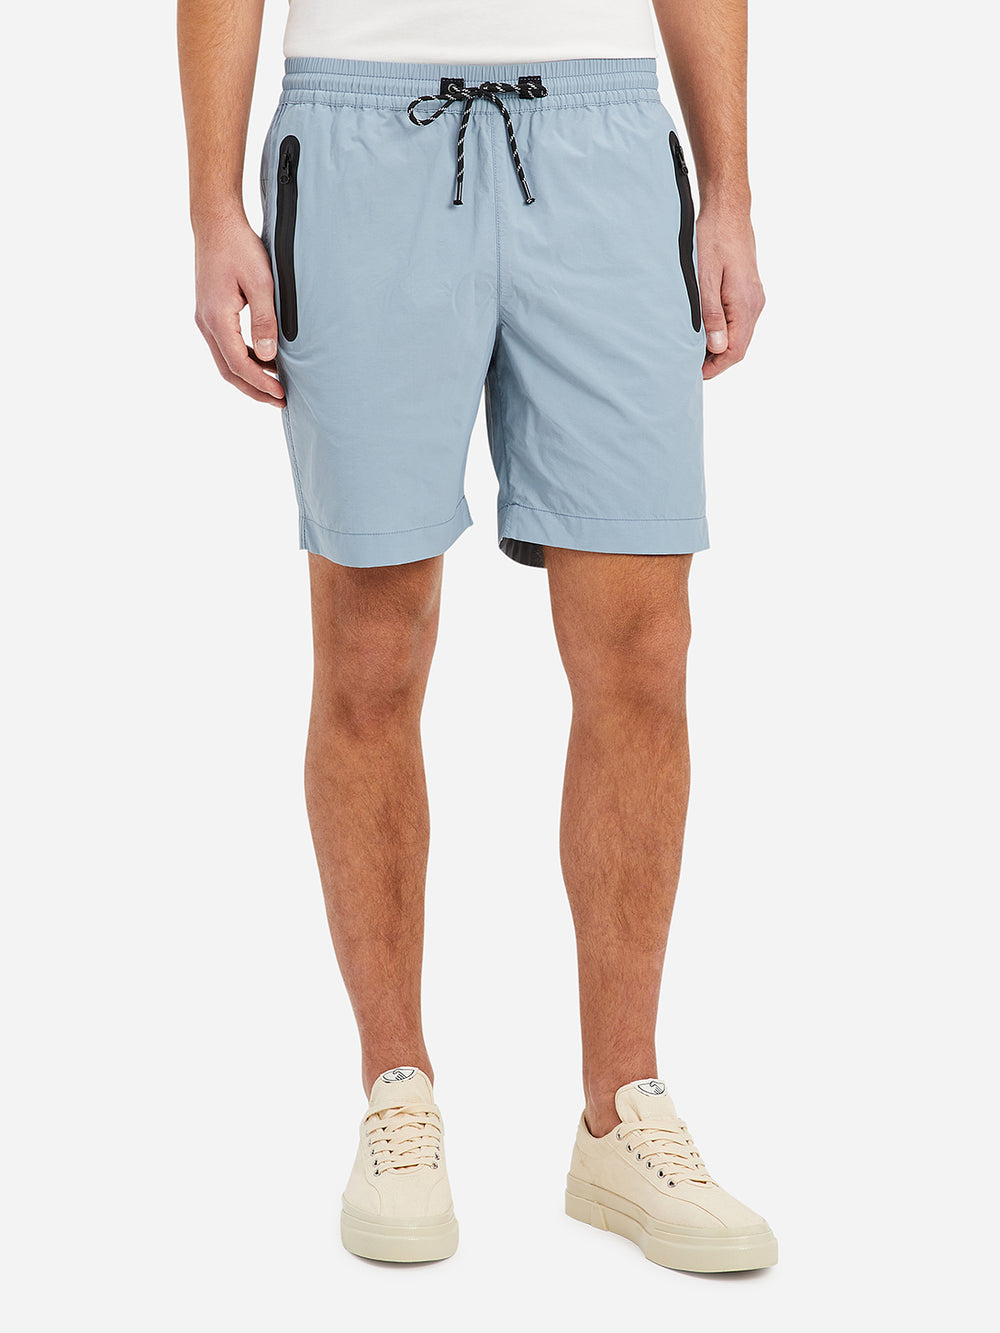 Blue Dreams Croton Short Men's nylon shorts ONS Clothing